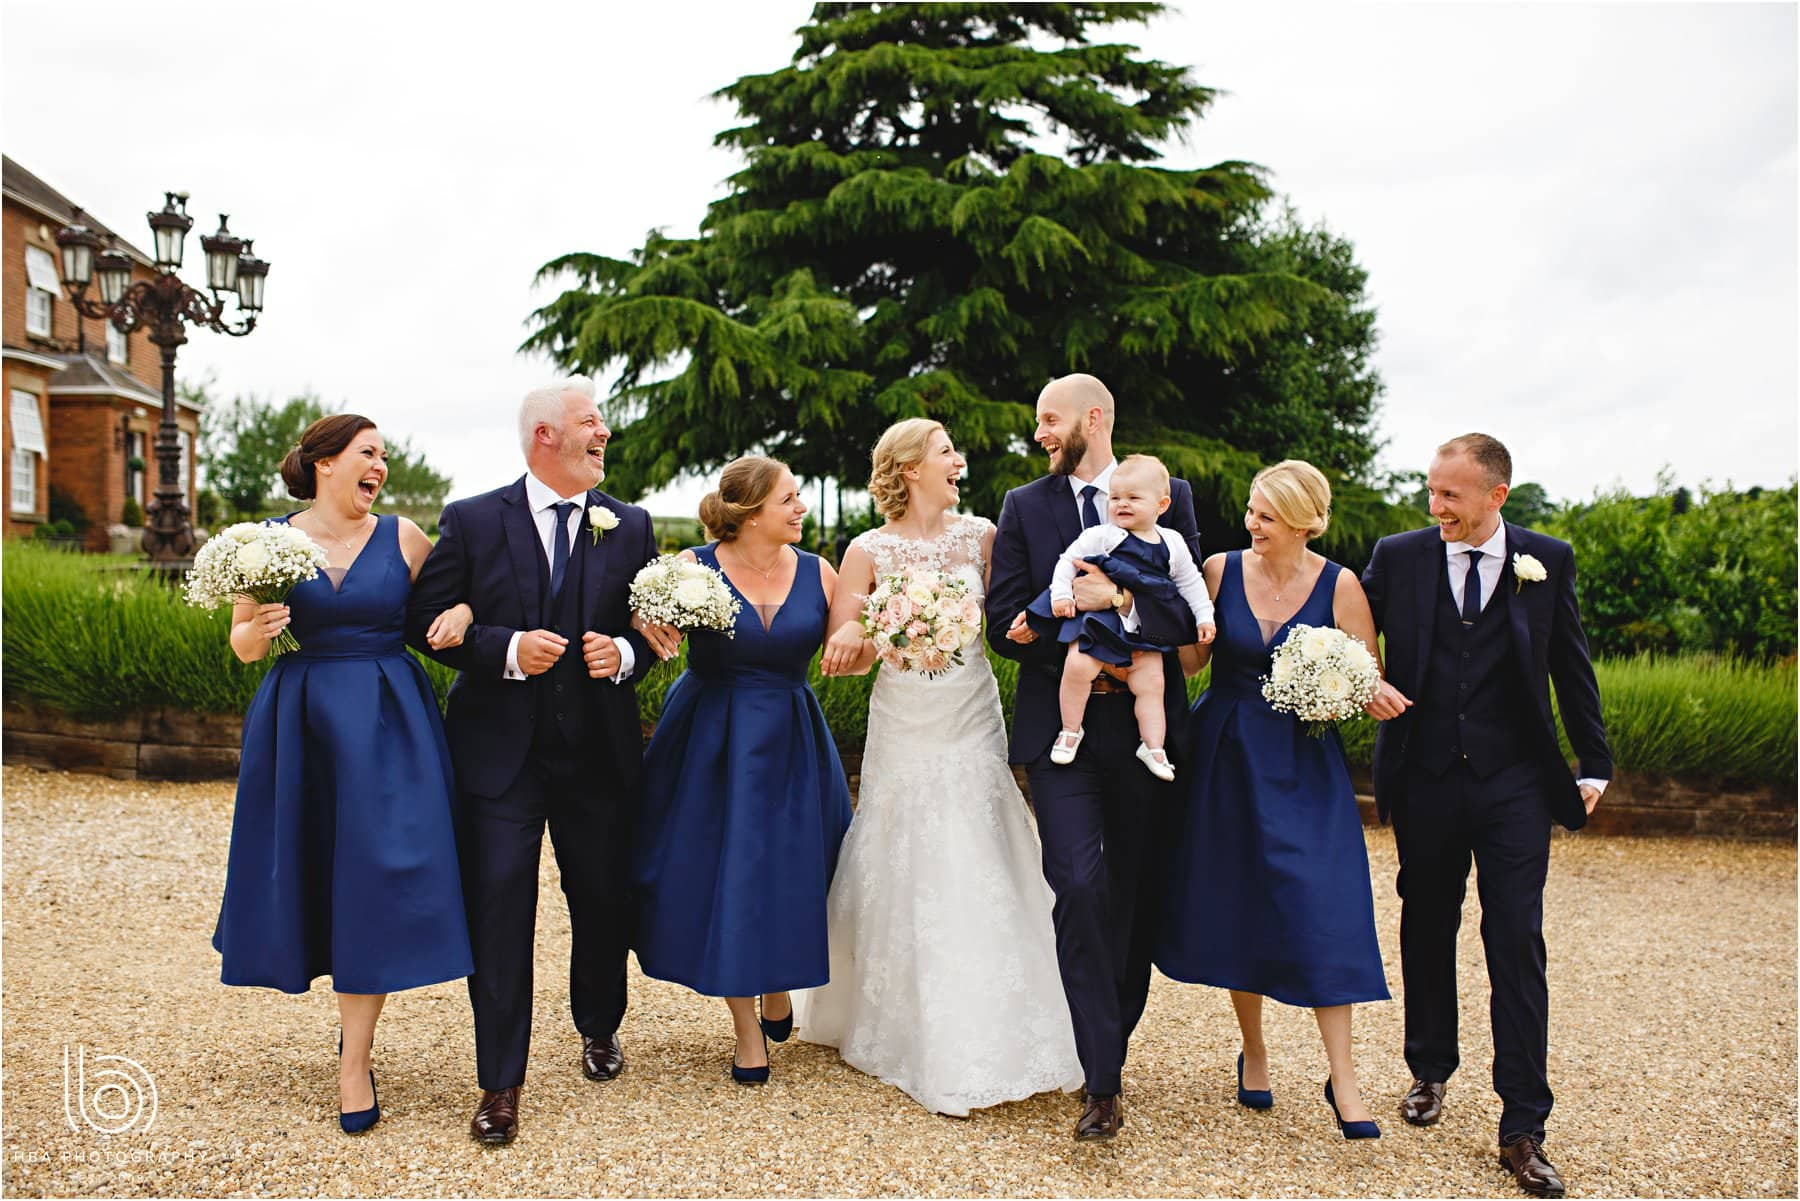 the bride & groom and the wedding party